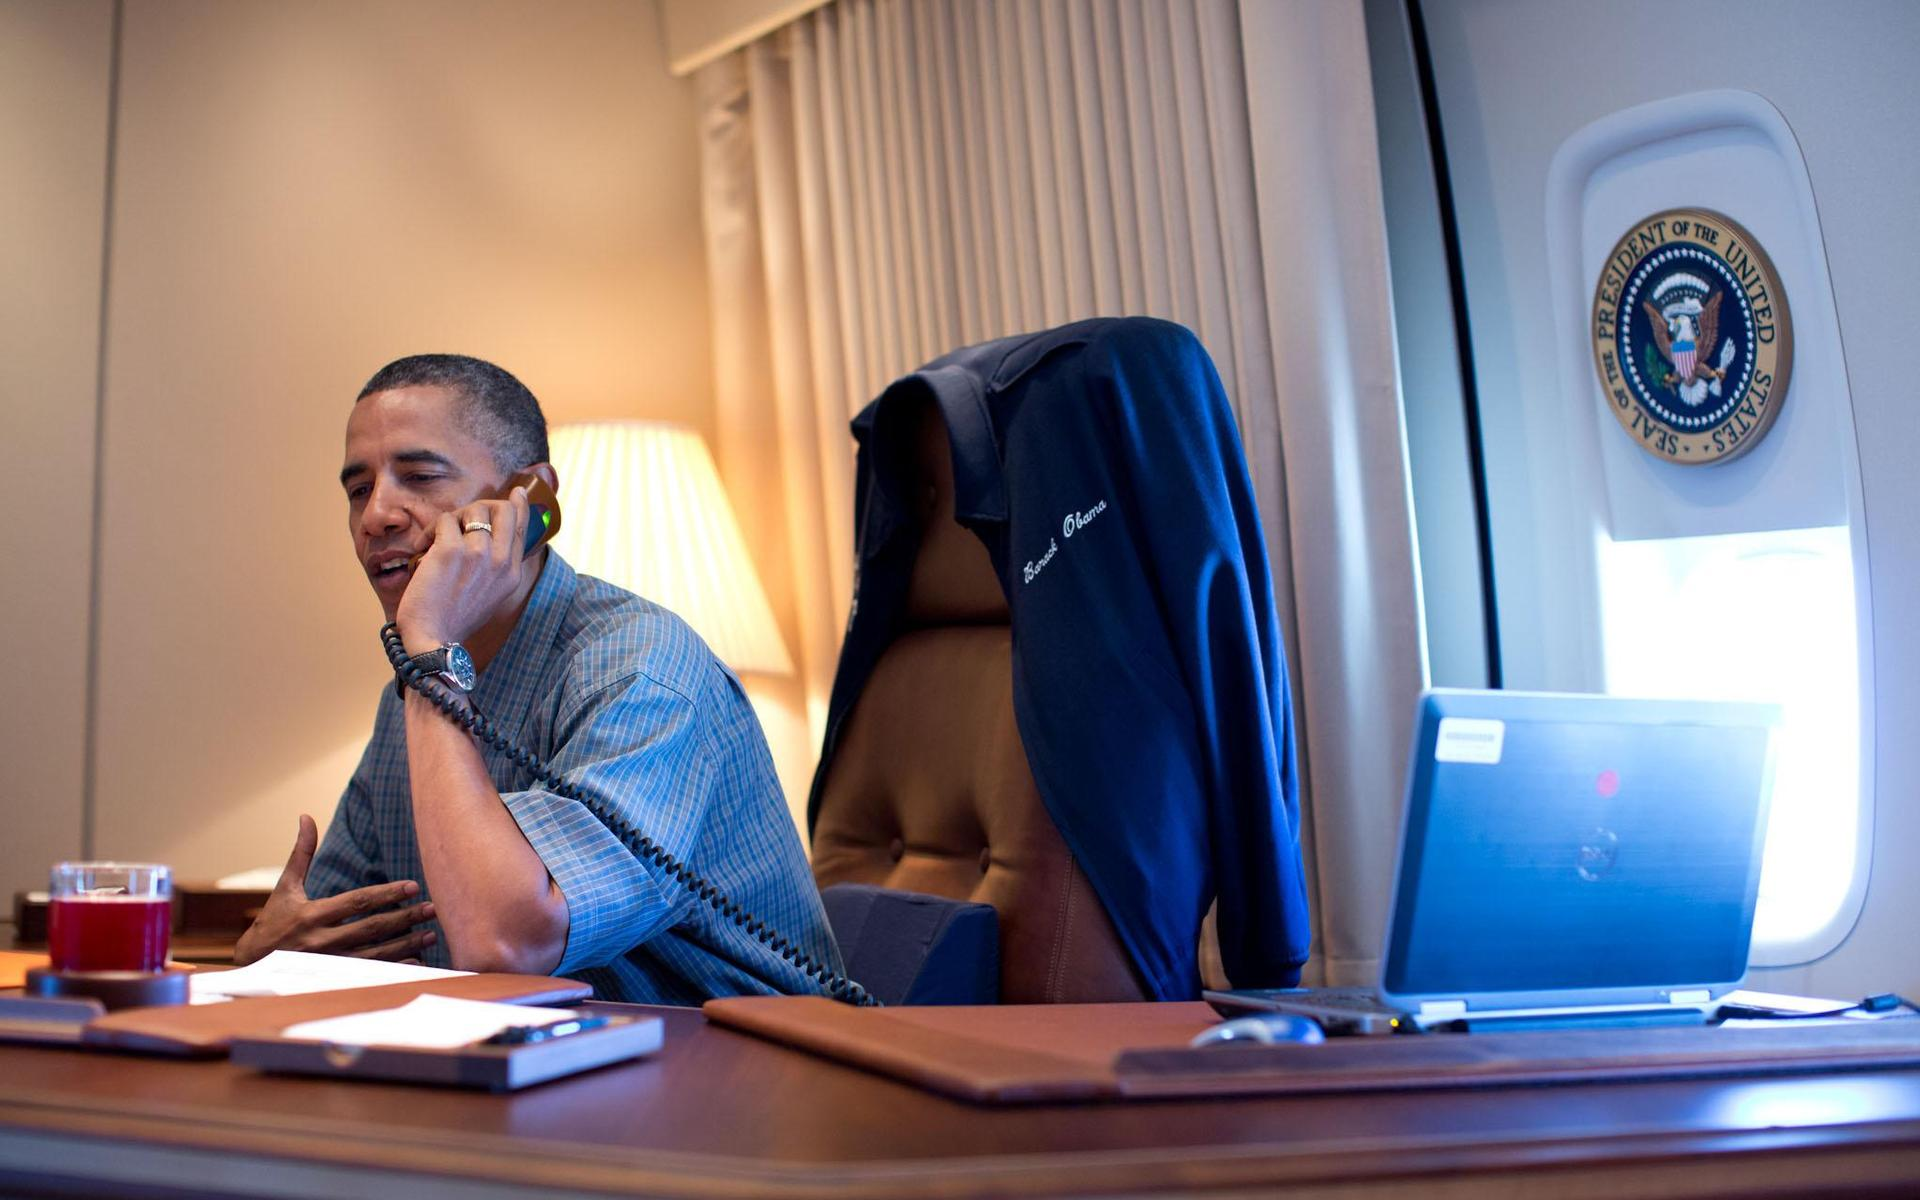 barack-obama-desktop-wallpaper-59510-61297-hd-wallpapers